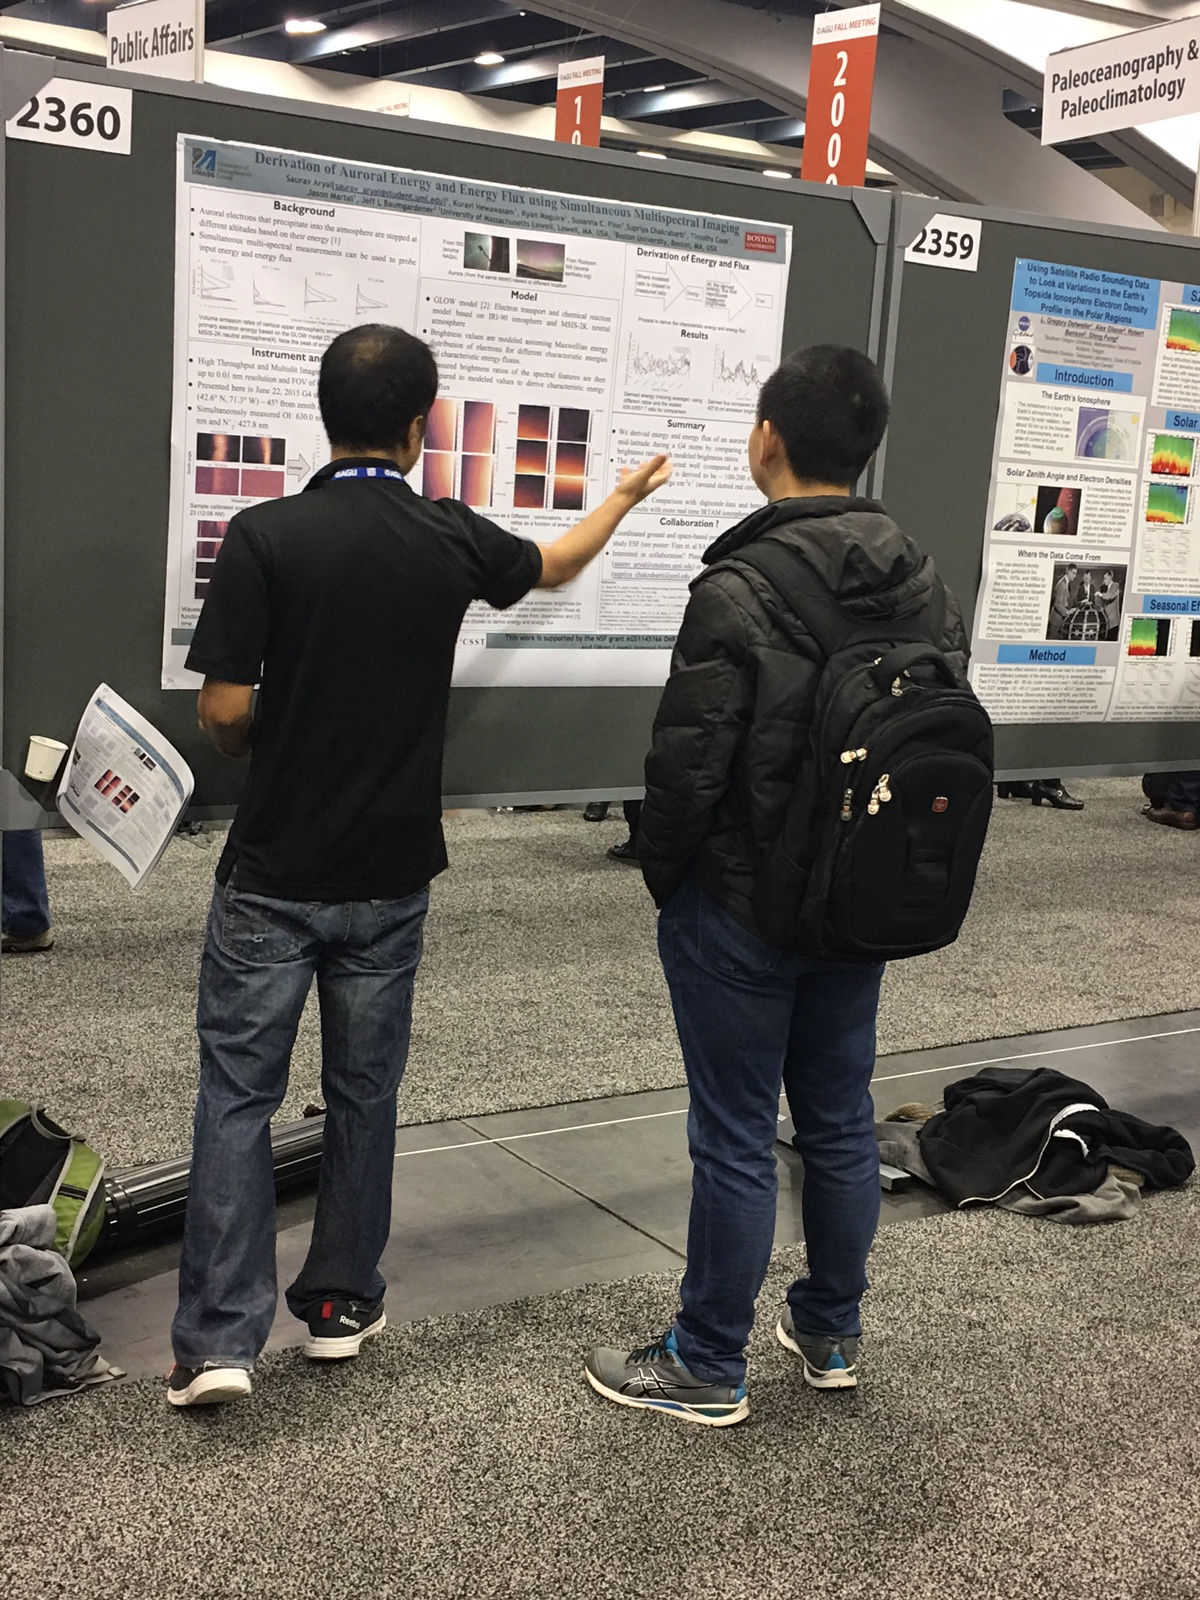 Poster presentation: Derivation of Auroral Energy and Energy Flux using Simultaneous Multispectral Imaging, Saurav Aryal, Kuravi Hewawasam, Ryan Maguire, Susanna C. Finn, Timothy Cook, Jason Martel, Jeffrey L. Baumgardner and Supriya Chakrabart.